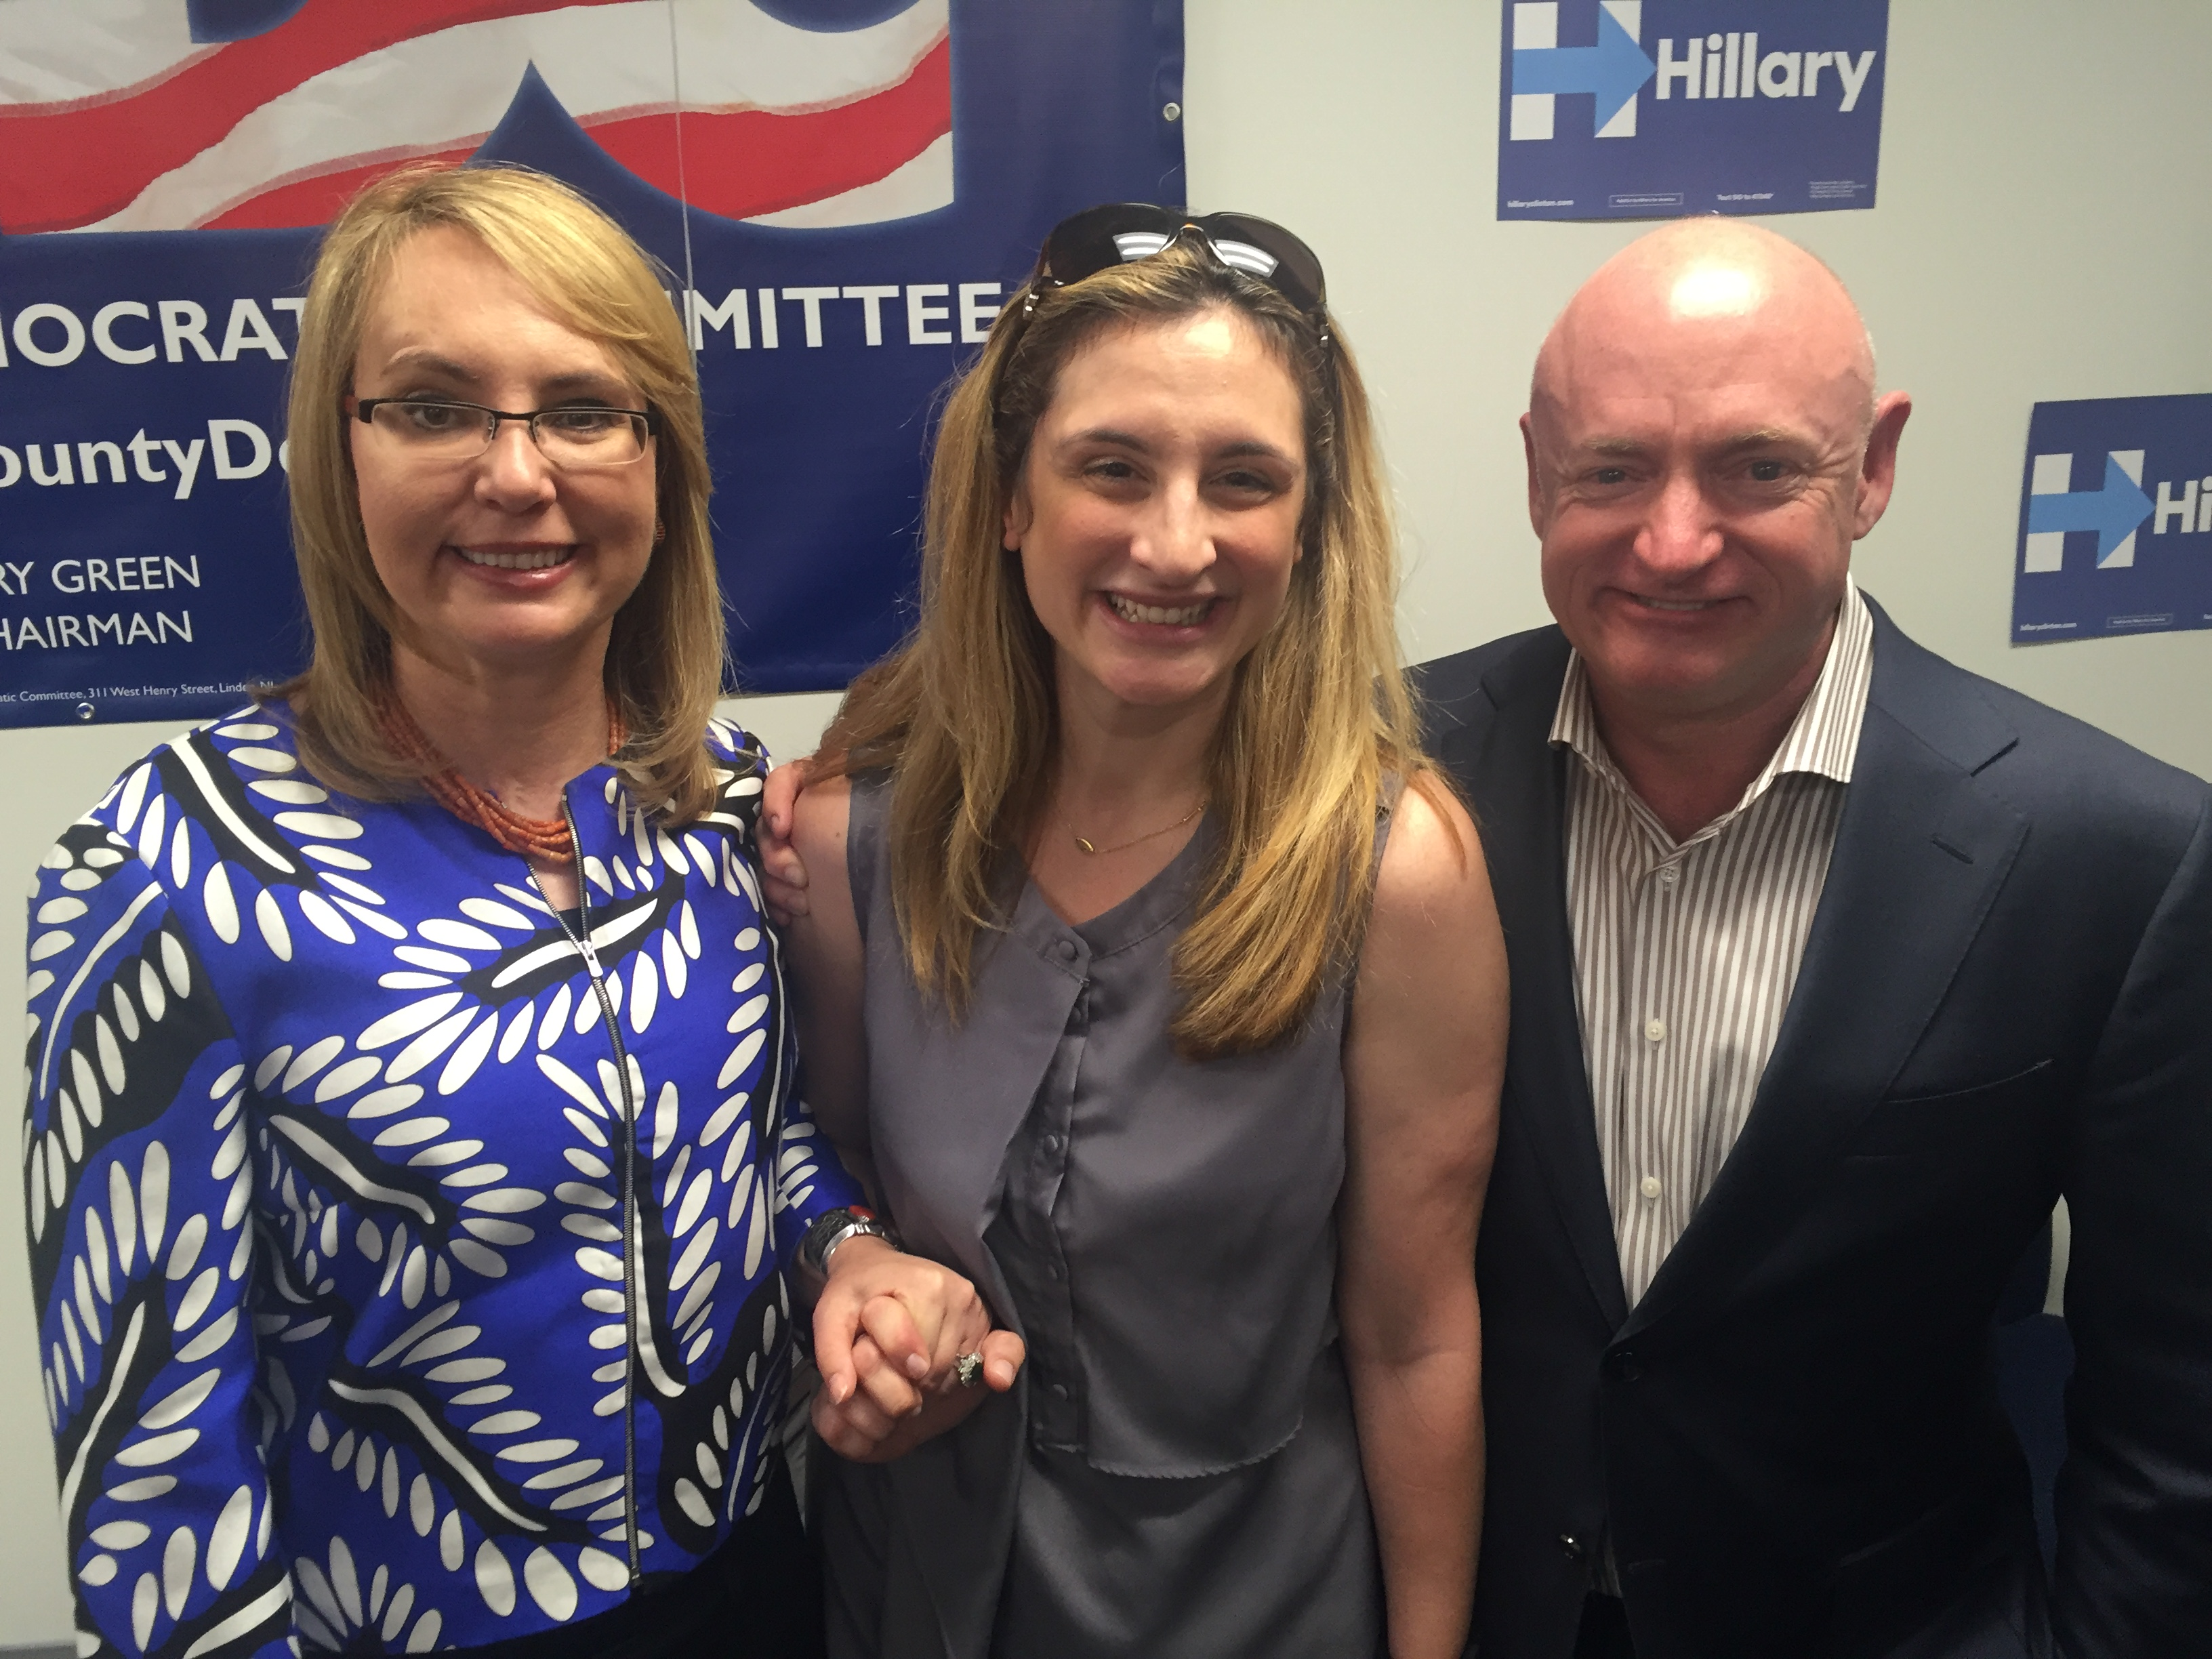 23b8e51d94dd4082a0bb_gabby_giffords_mark_kelly_and_kim_palmieri-mouded.jpg